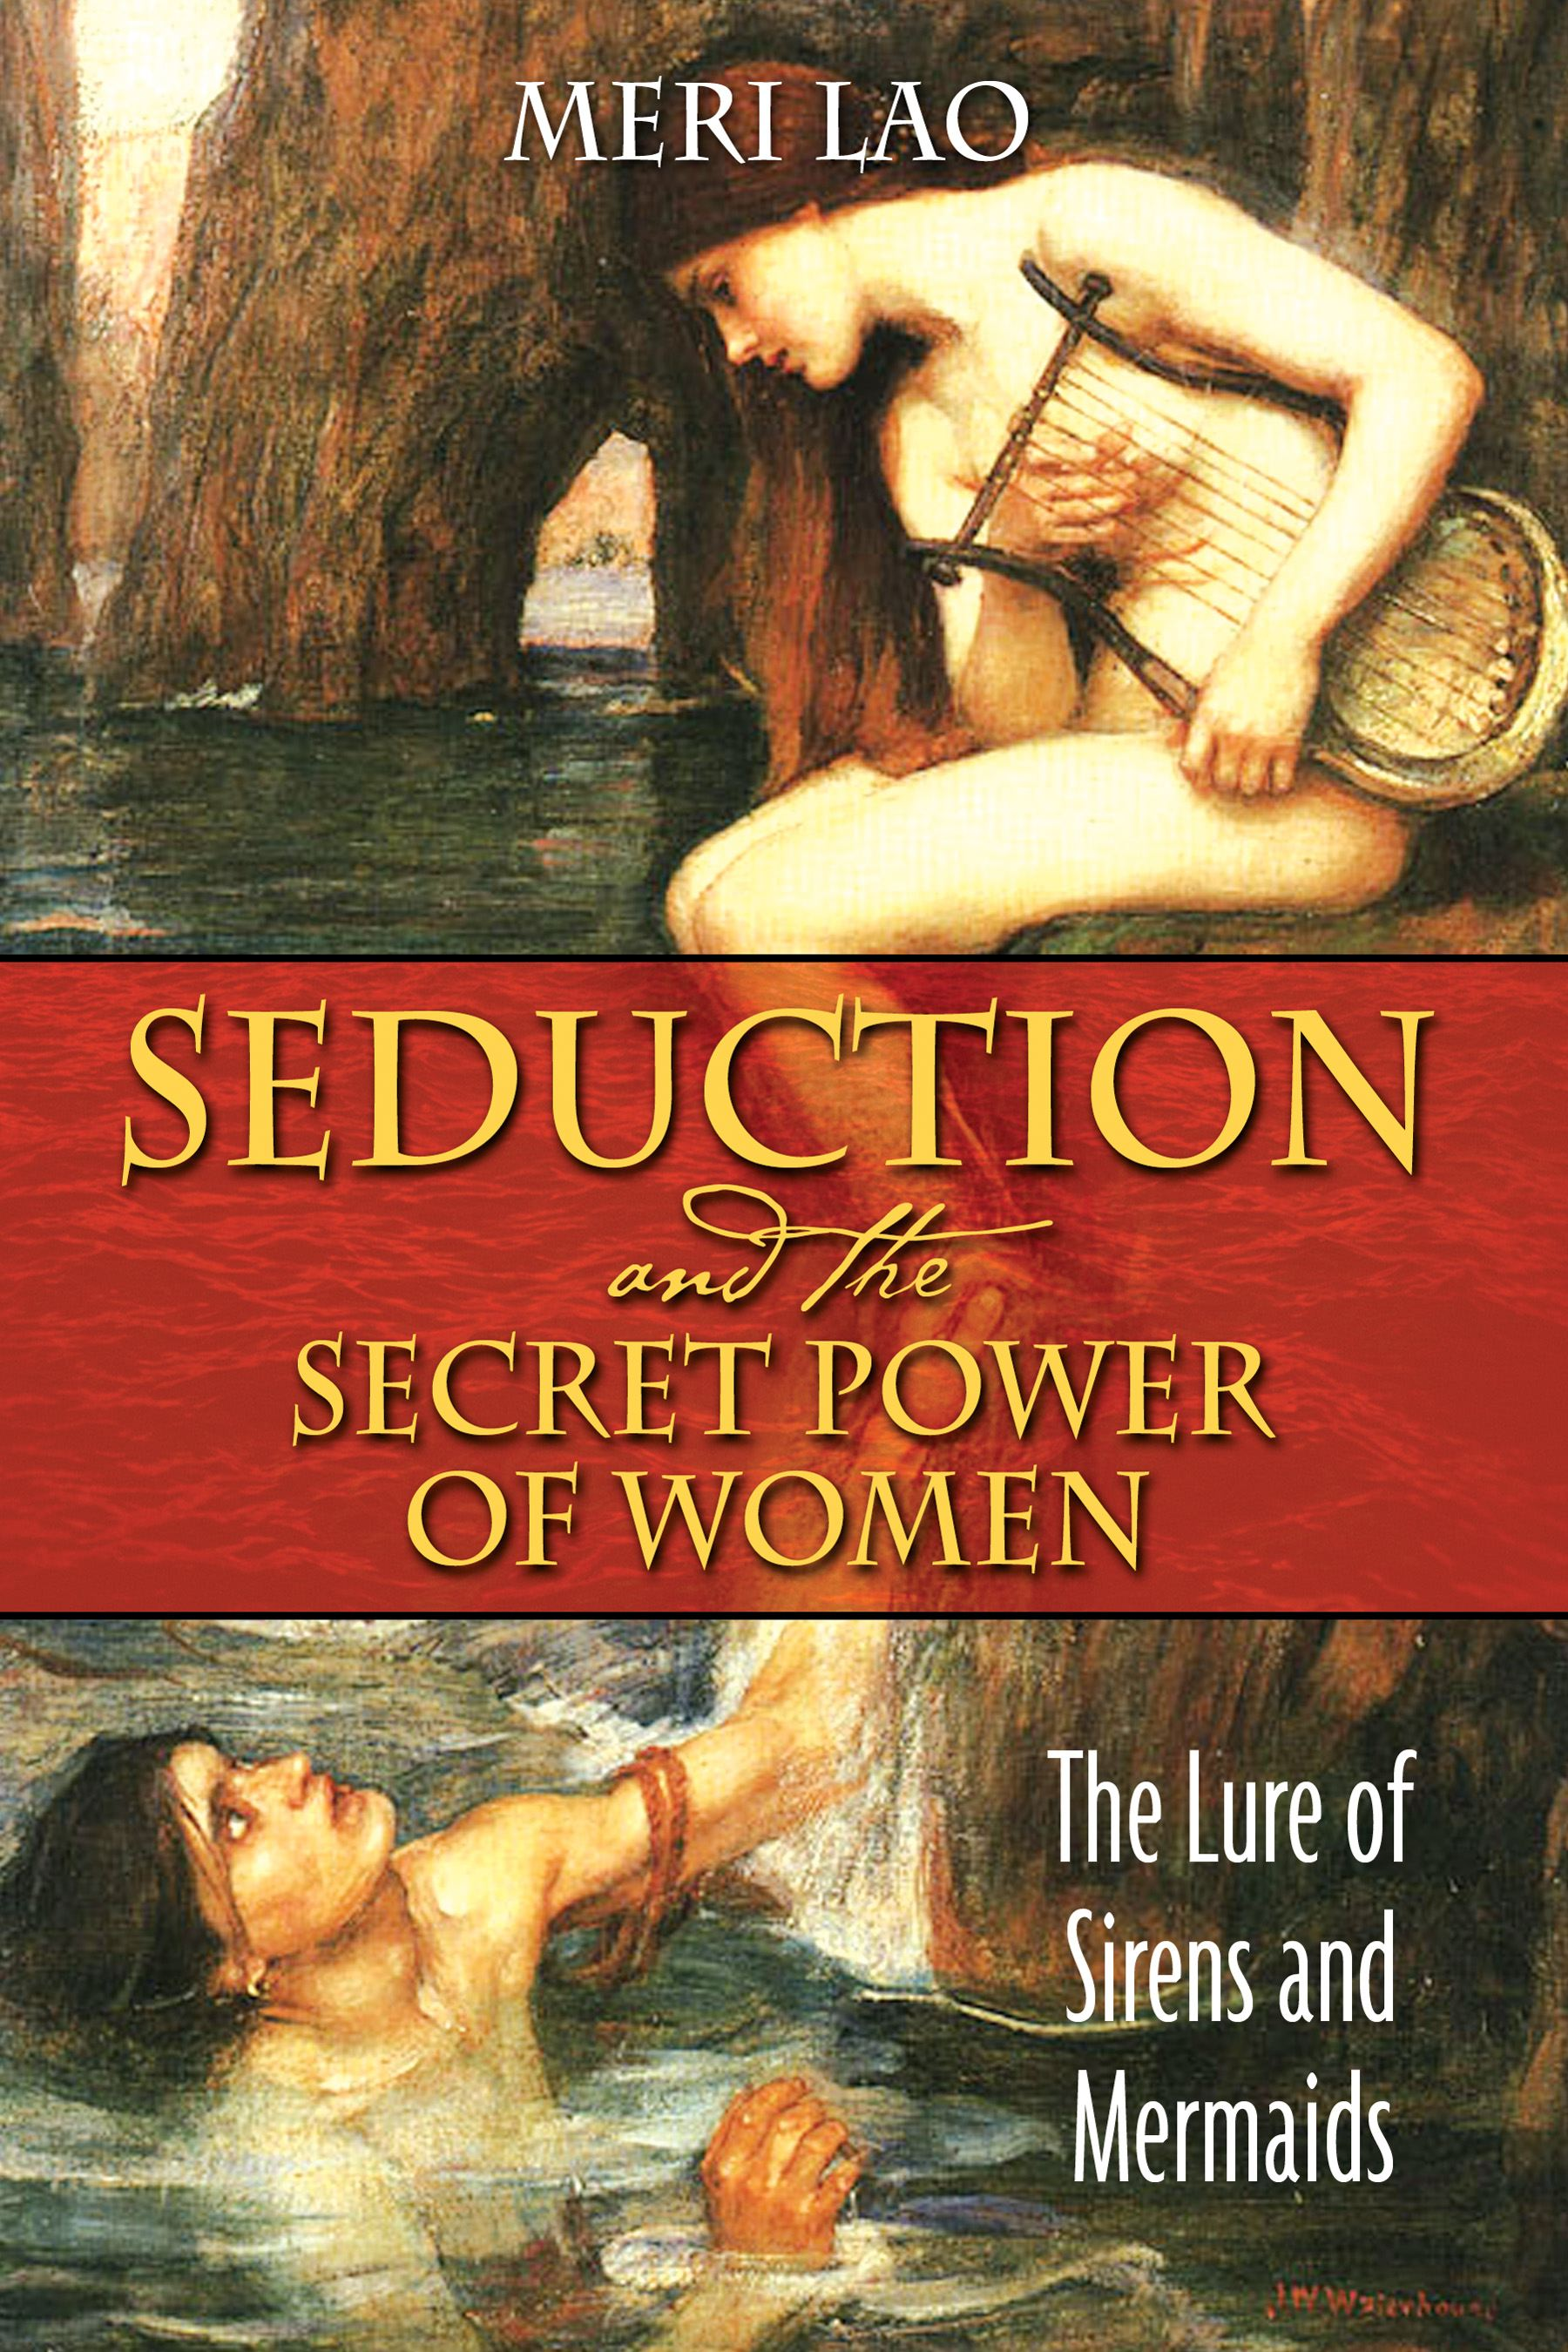 Seduction and the secret power of women 9781594772016 hr